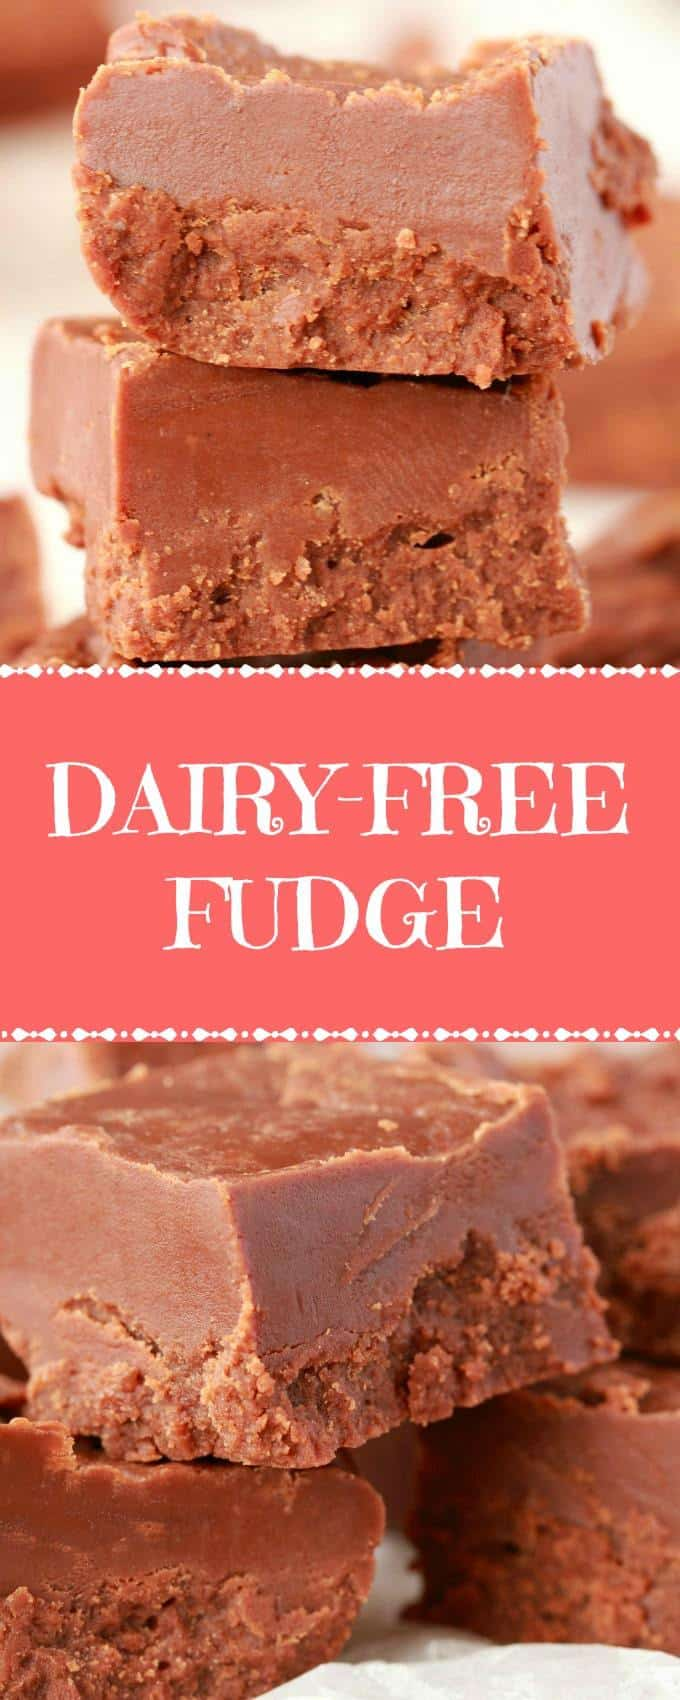 Rich and mega-chocolatey dairy-free fudge. This stovetop fudge is super quick to make, doesn't require any special equipment, is just 5-ingredients and has perfect results! Vegan and gluten-free! | lovingitvegan.com